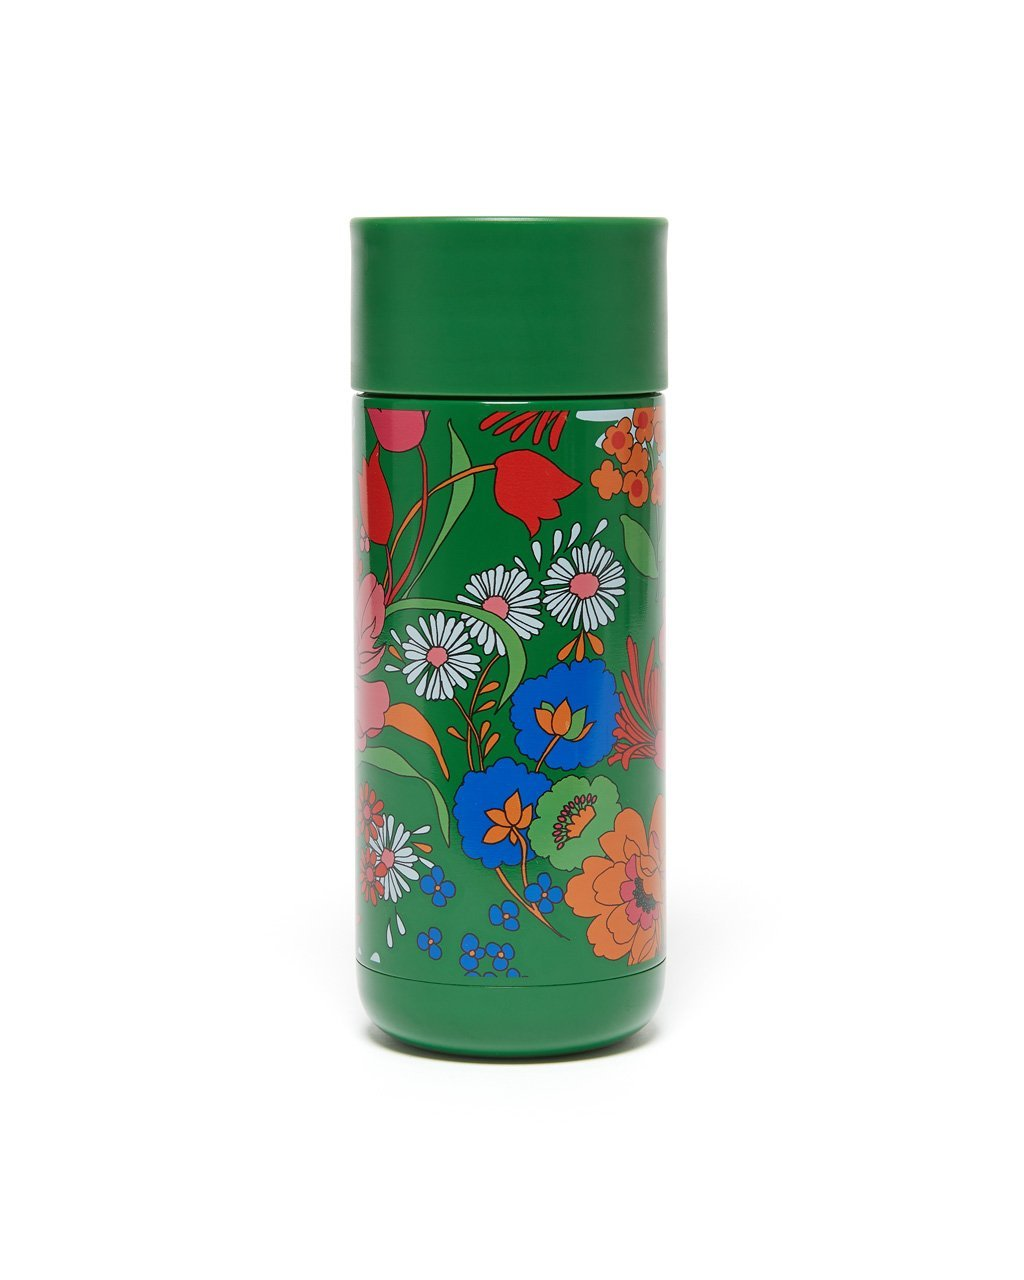 Green stainless steel thermal mug with floral pattern design